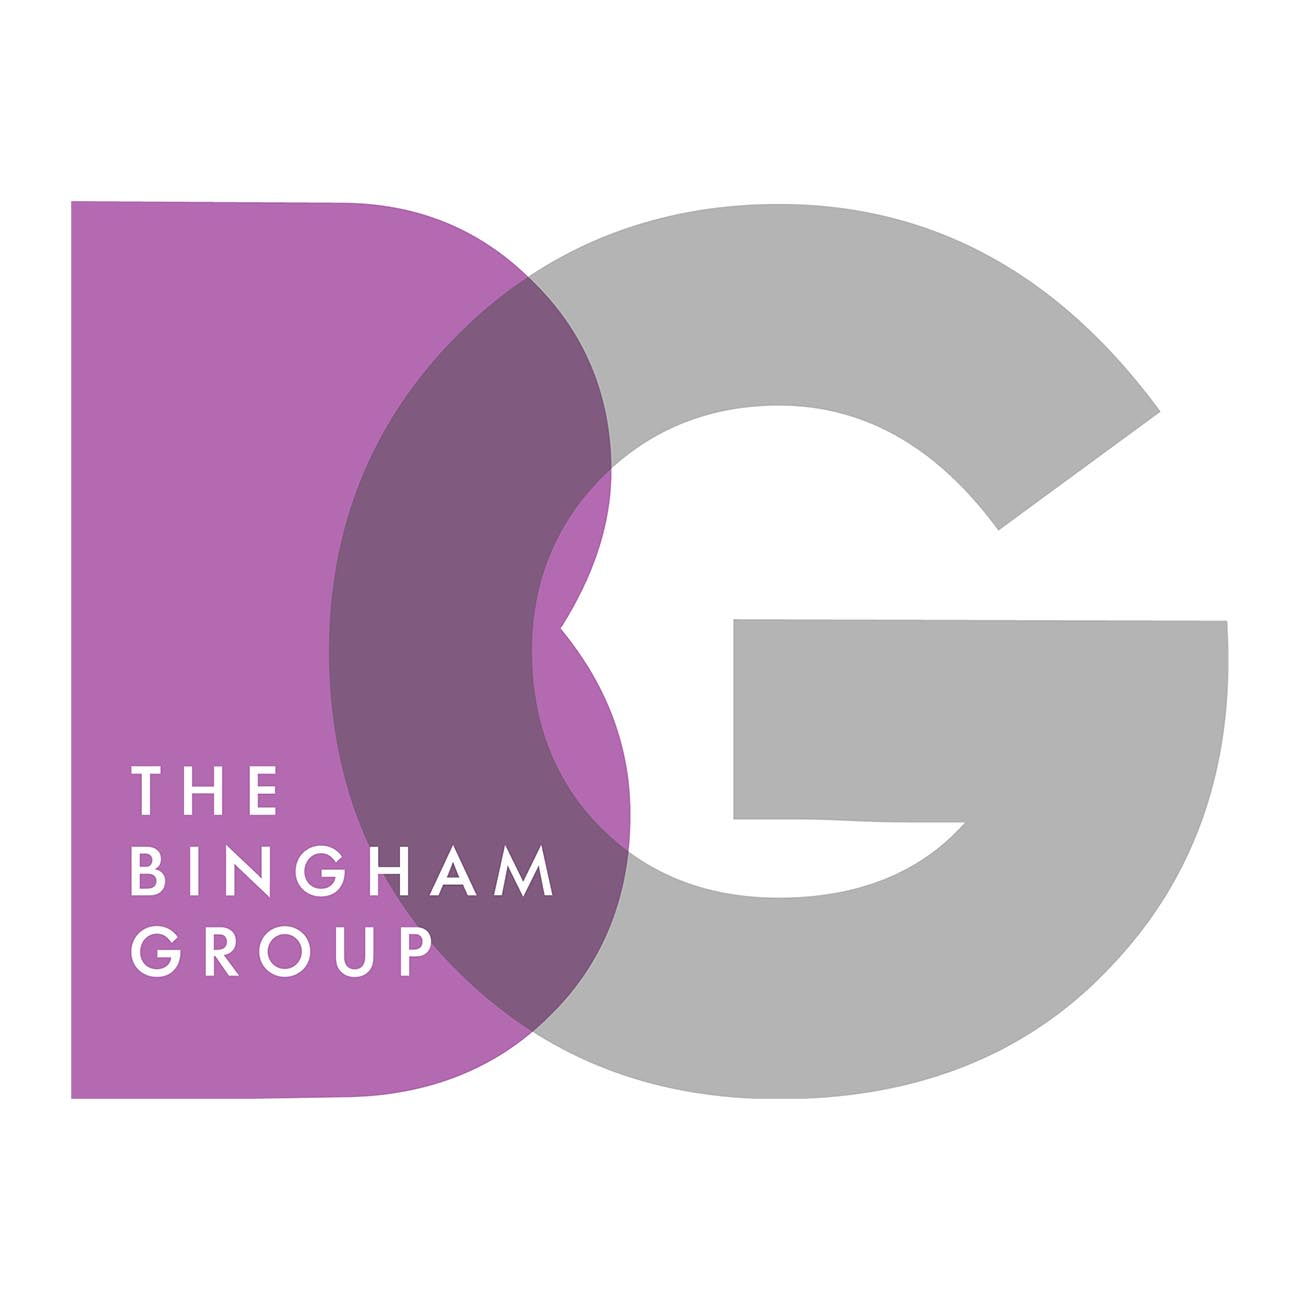 The Bingham Group